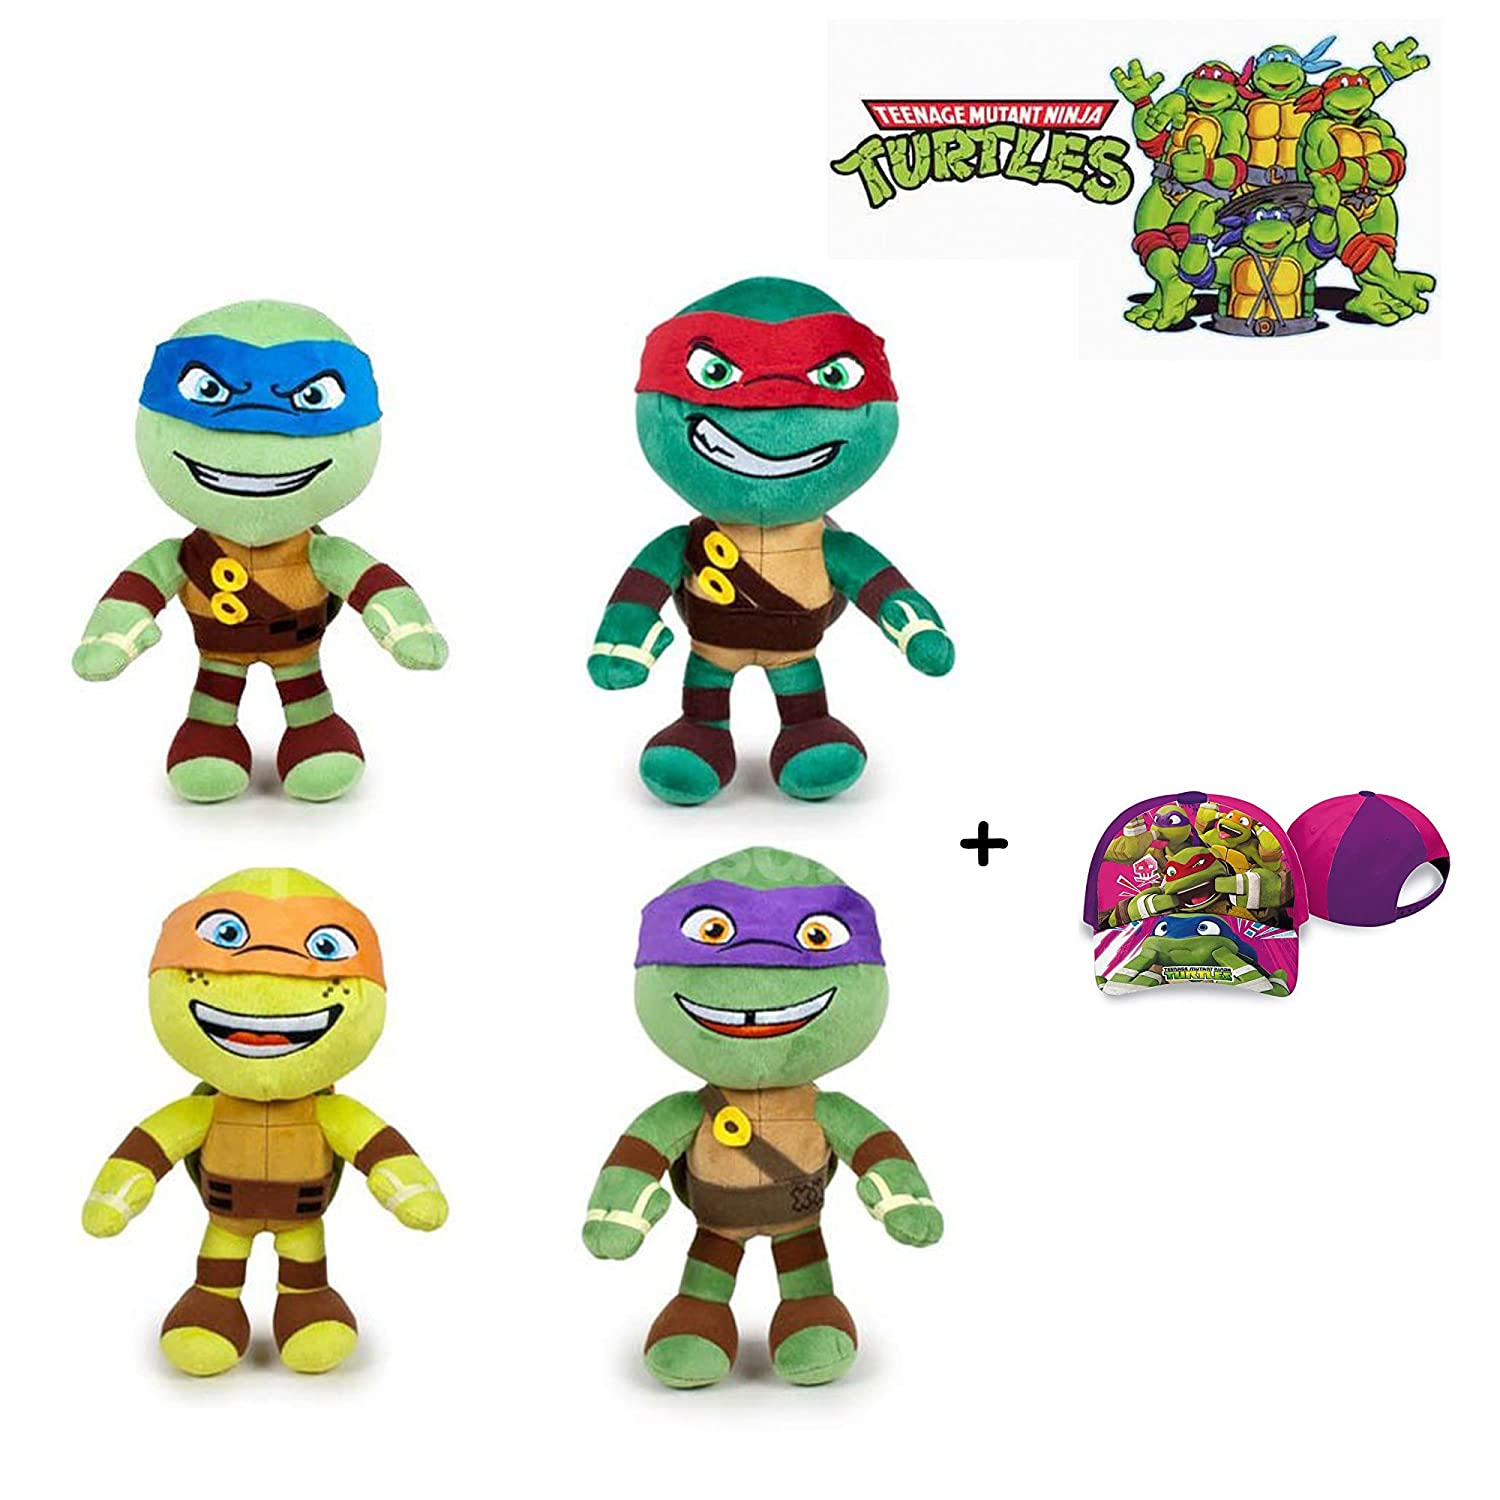 Tortugas Ninja - Pack 4 peluches 21cm Calidad super soft ...